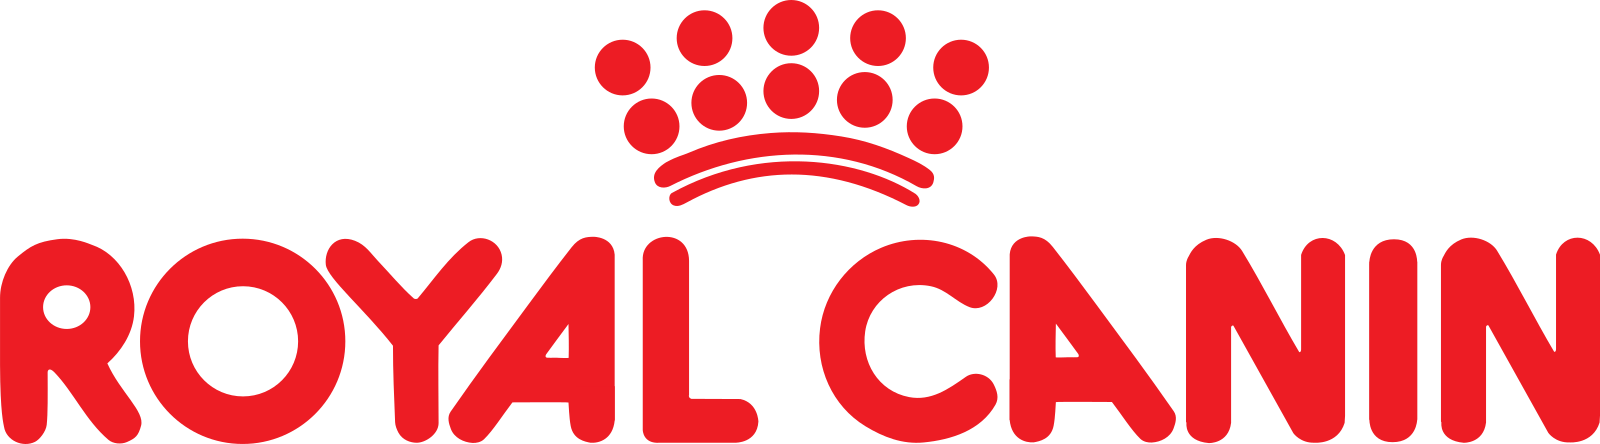 royal-canin-logo-2